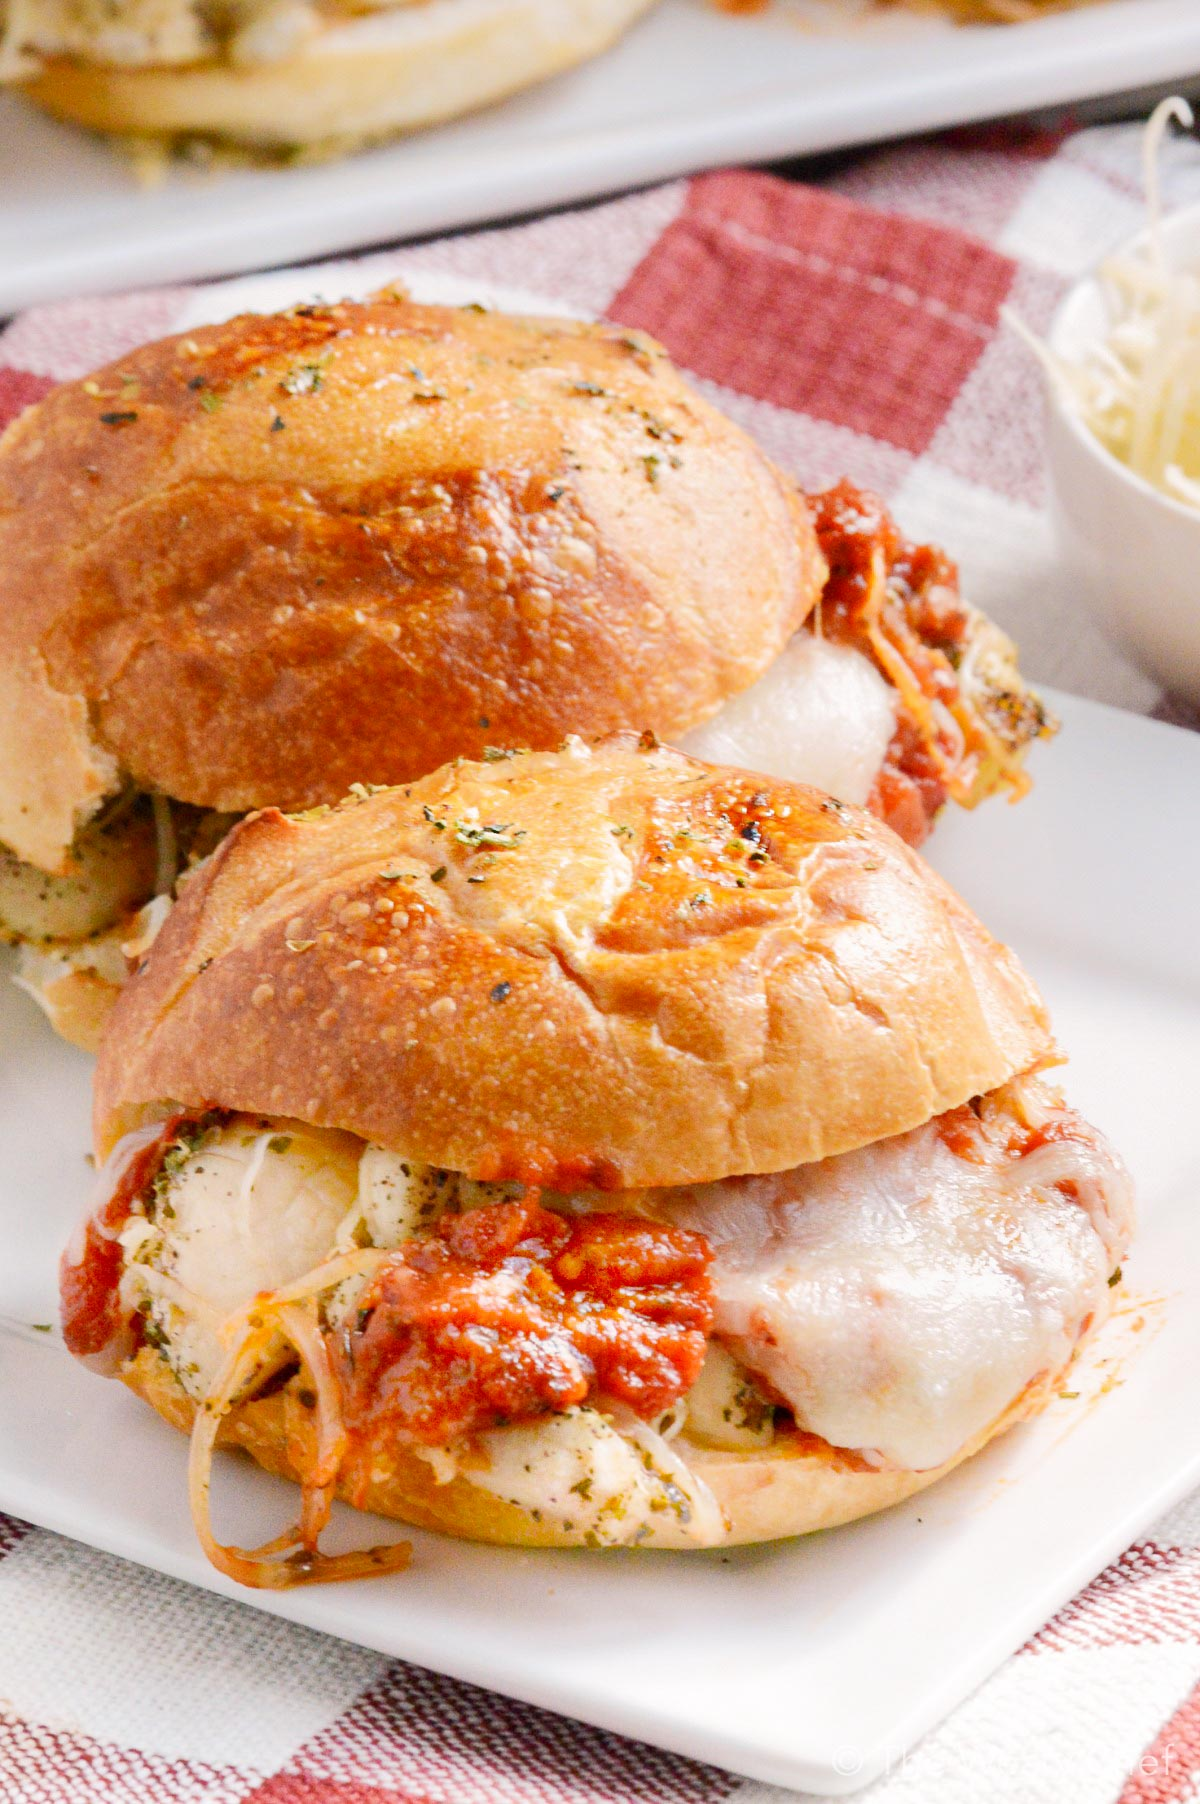 These Italian chicken sliders taste like chicken parmesan on a bun. They are ready in about 20 minutes and are a perfect family dinner recipe!